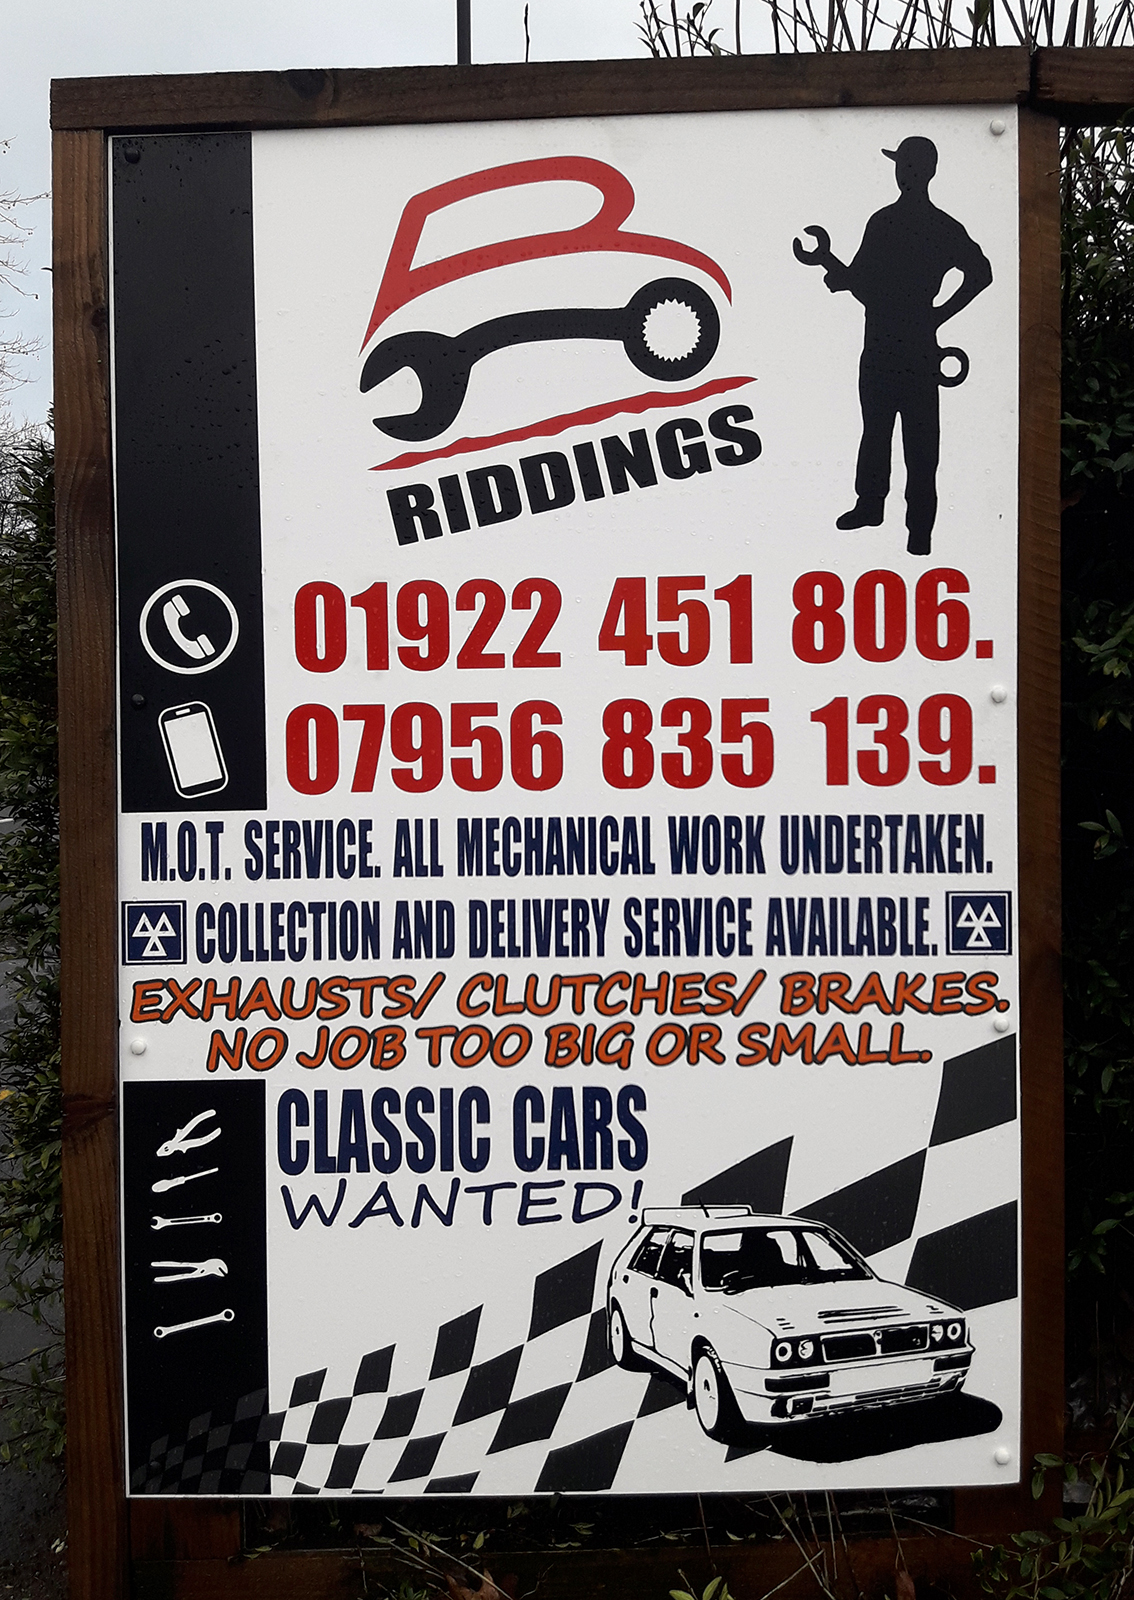 riddings-large-sign-1